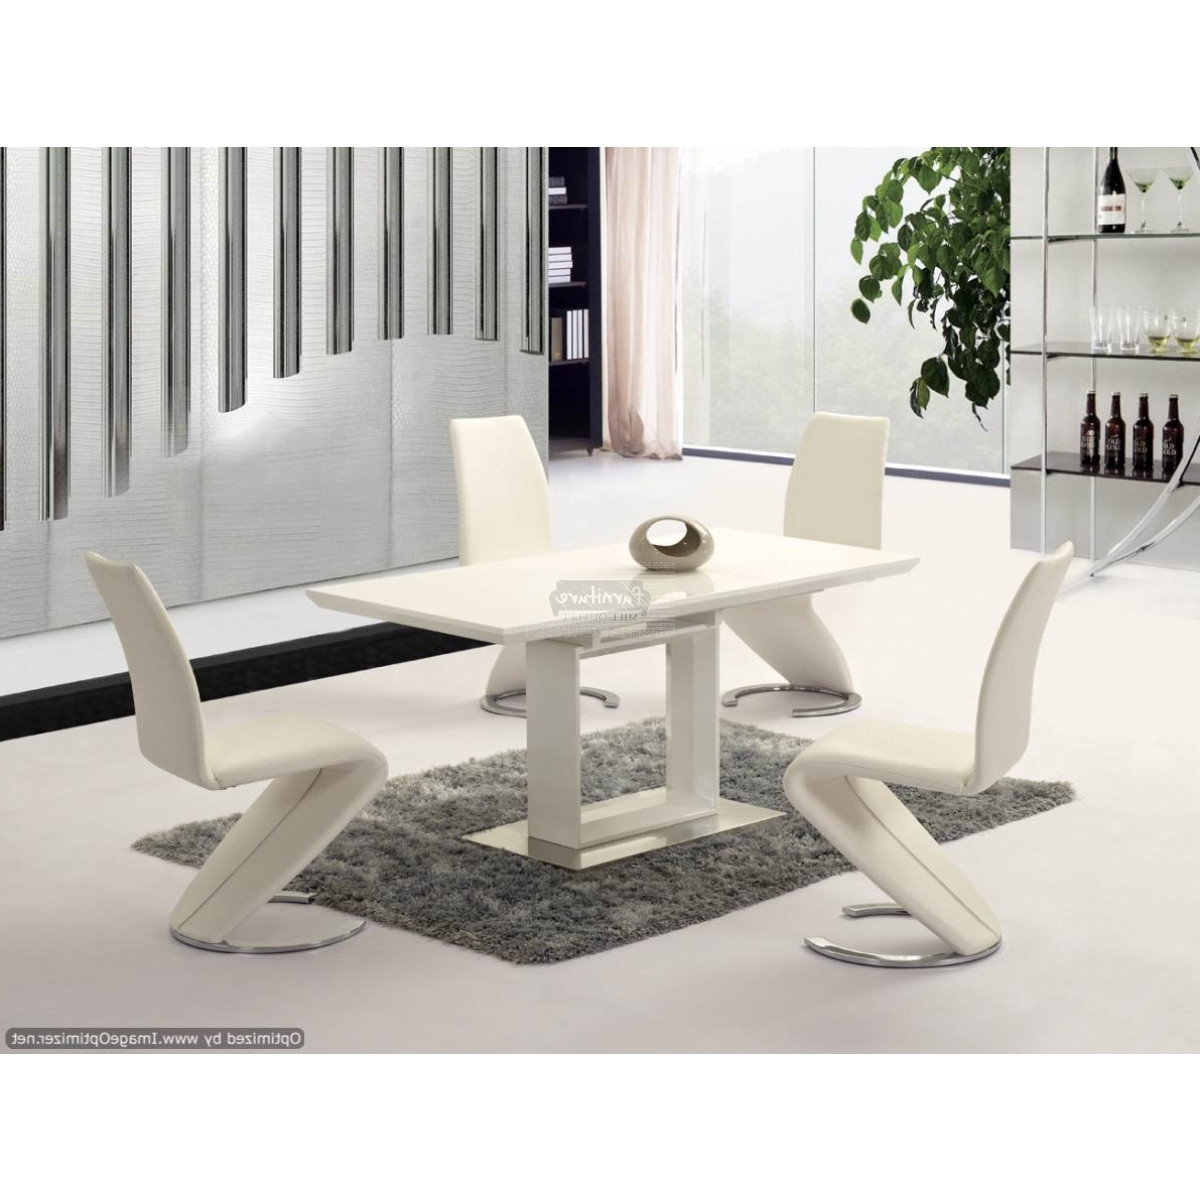 Most Recent Space White High Gloss Extending Dining Table – 120Cm To 160Cm With Regard To Black Gloss Extending Dining Tables (View 17 of 25)